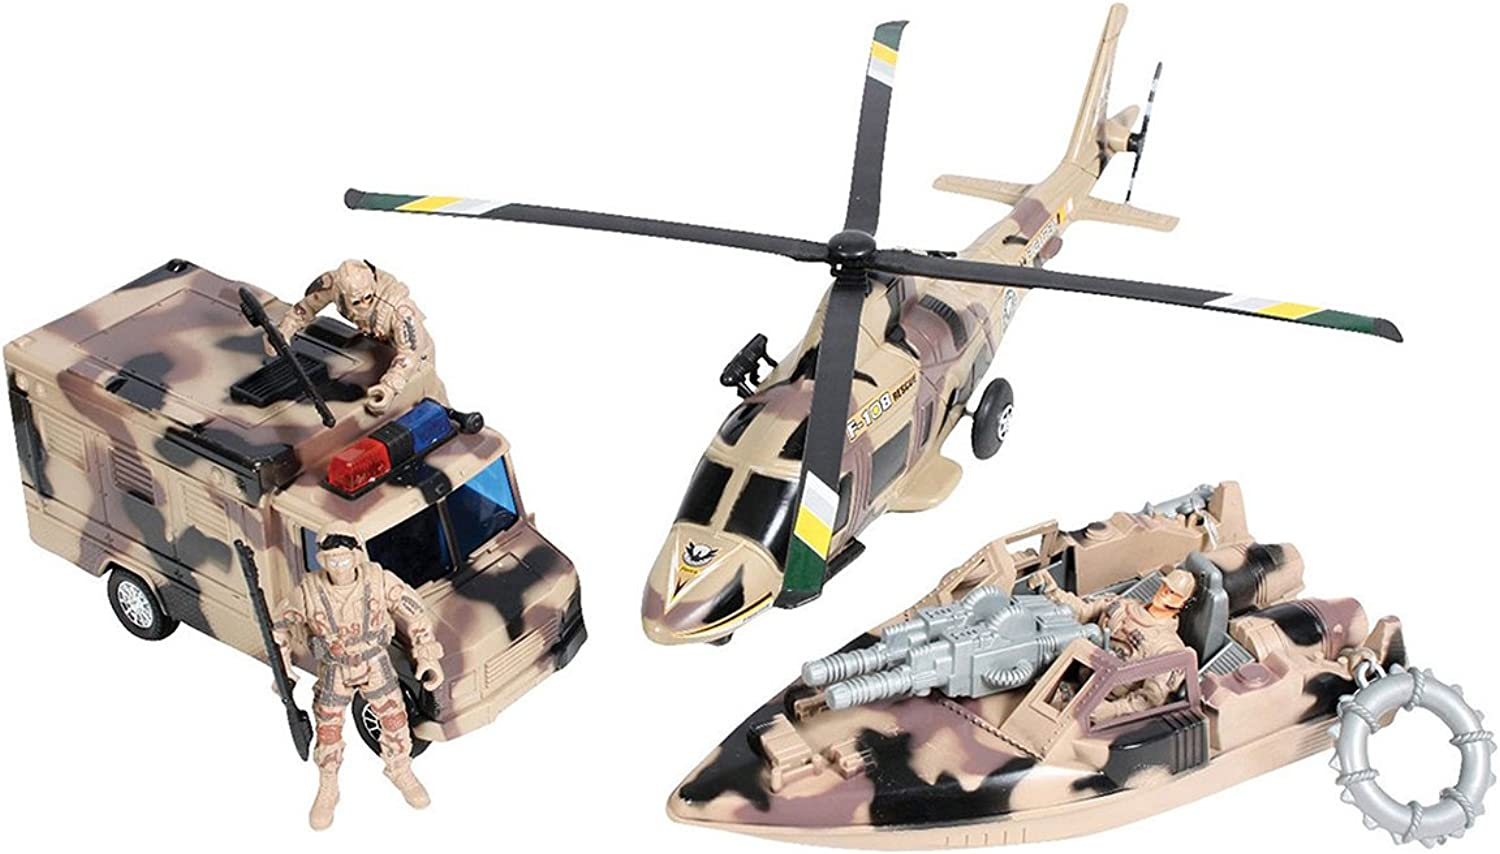 Redhco Super Warrior Vehicle Play Set